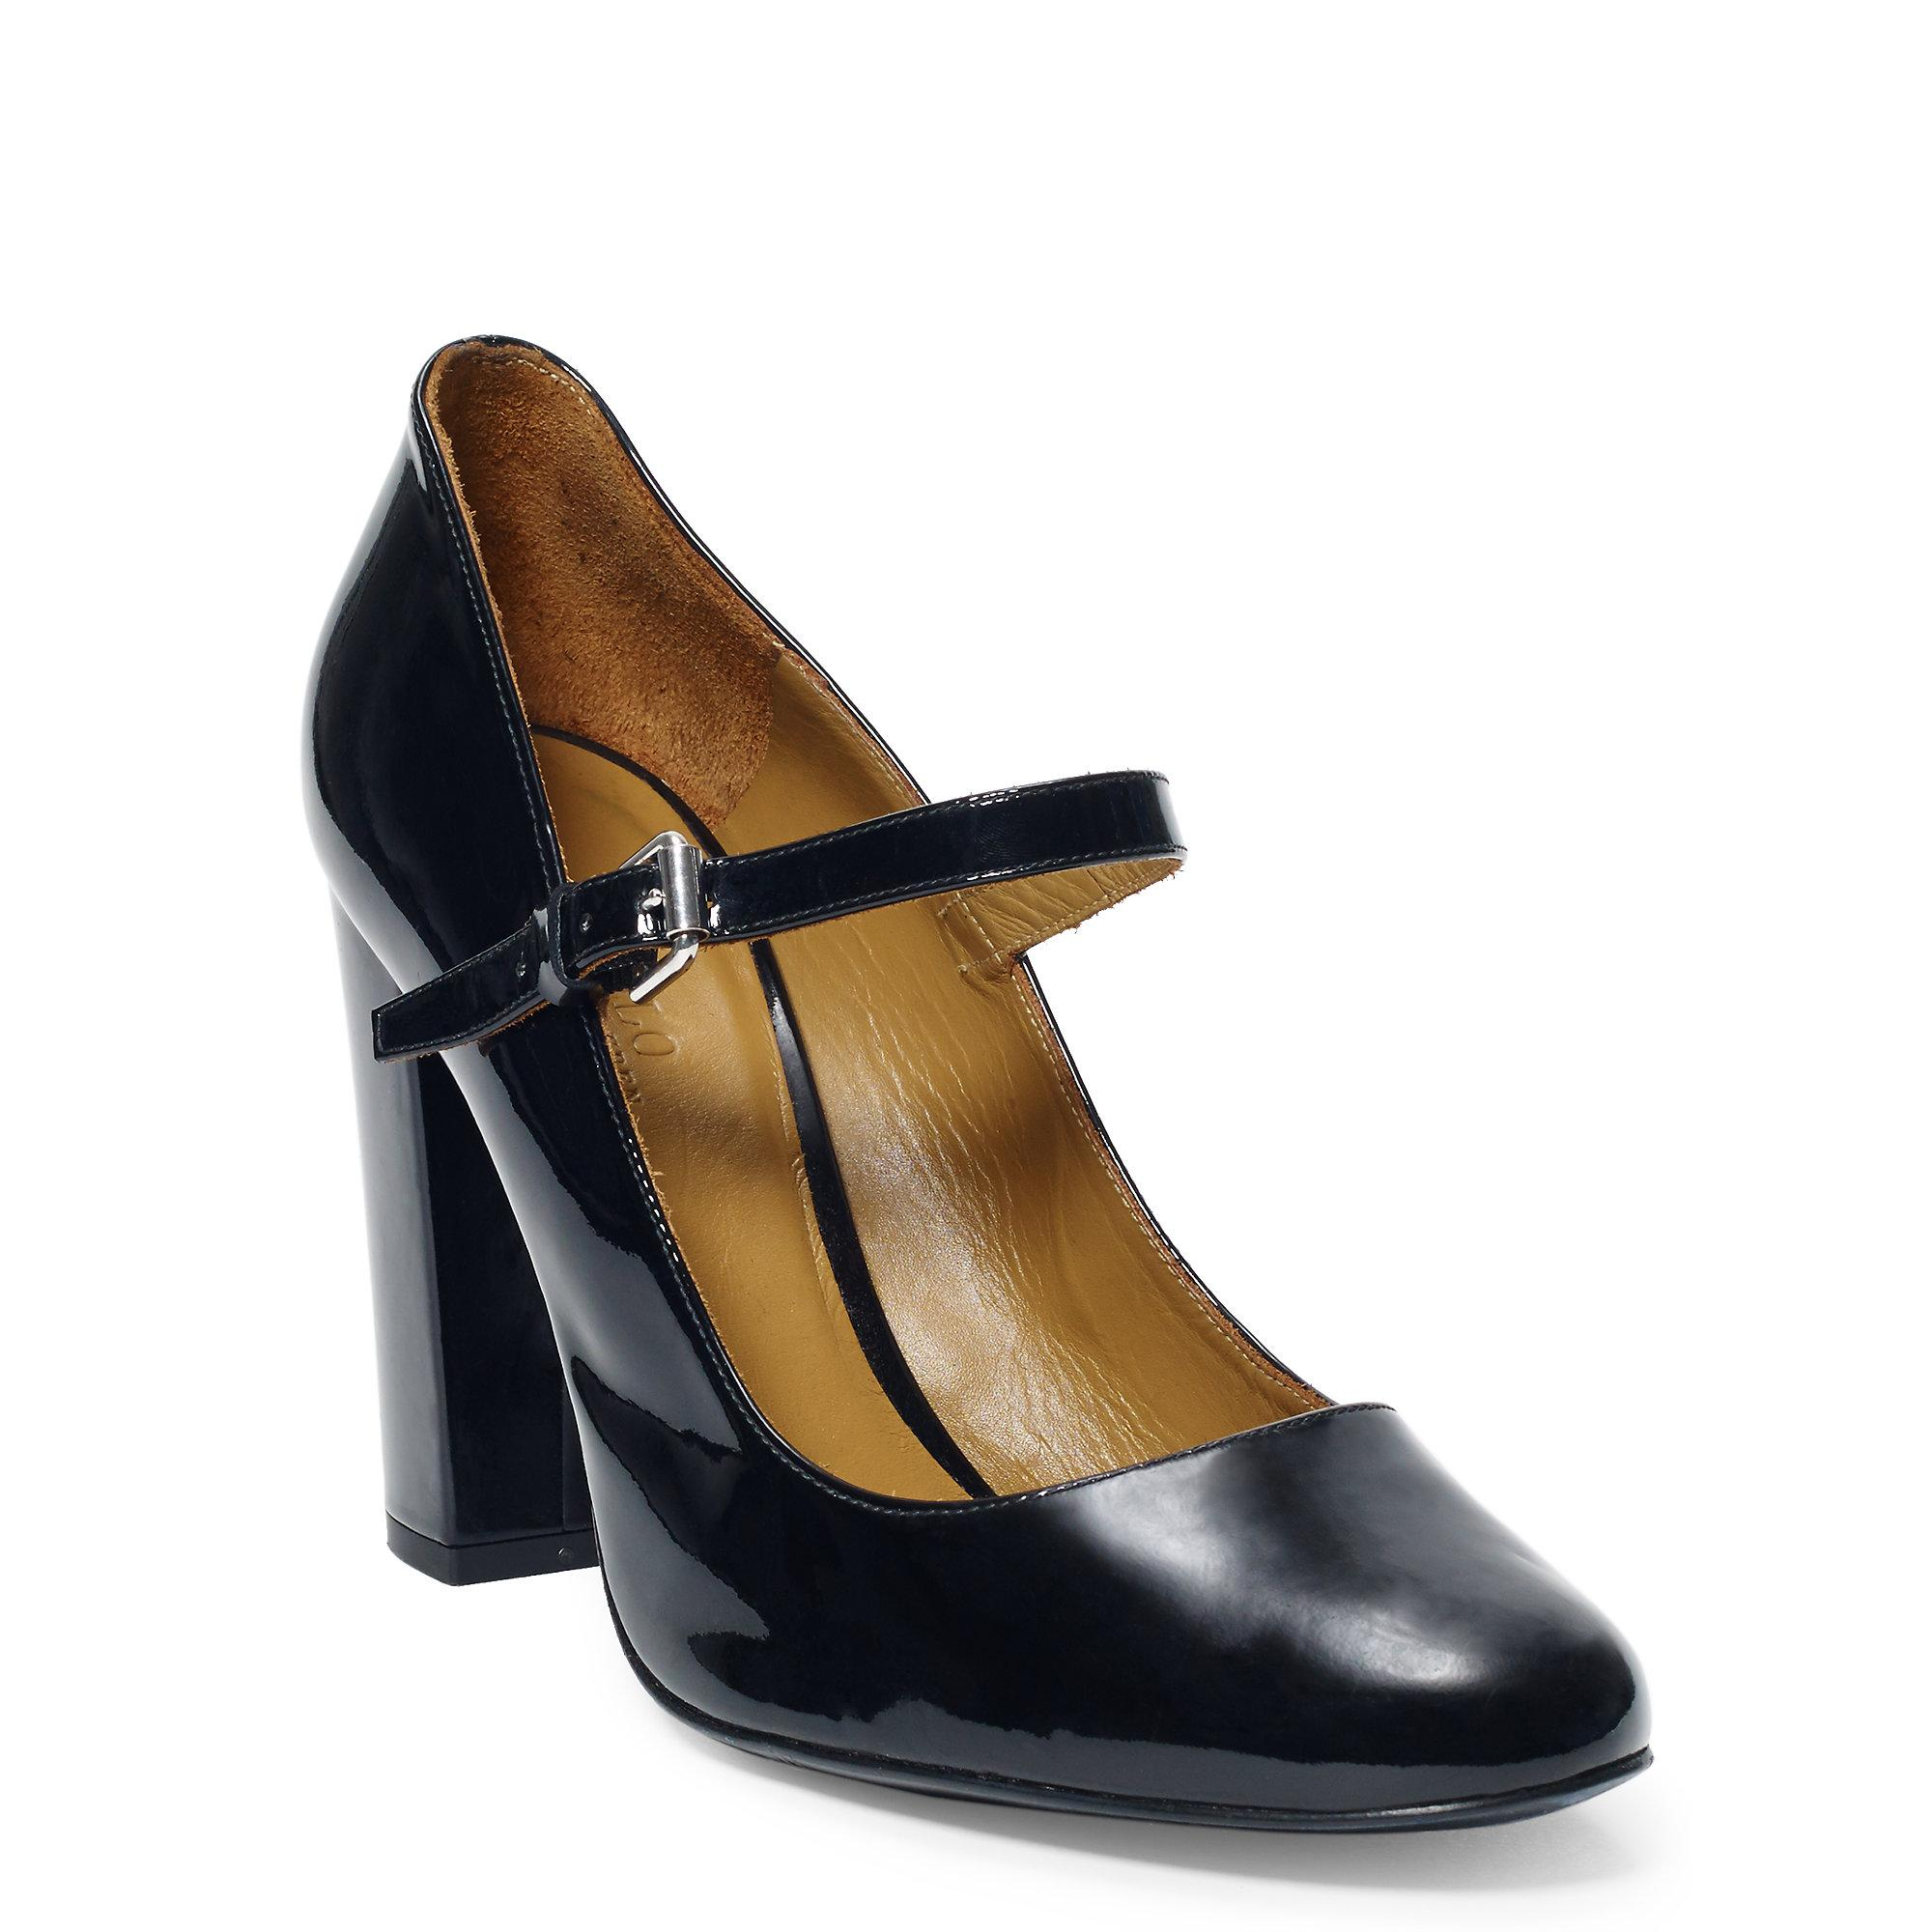 Polo Ralph Lauren Mary Jane Round-Toe Pumps cheap outlet discounts for sale zJO95J4oy